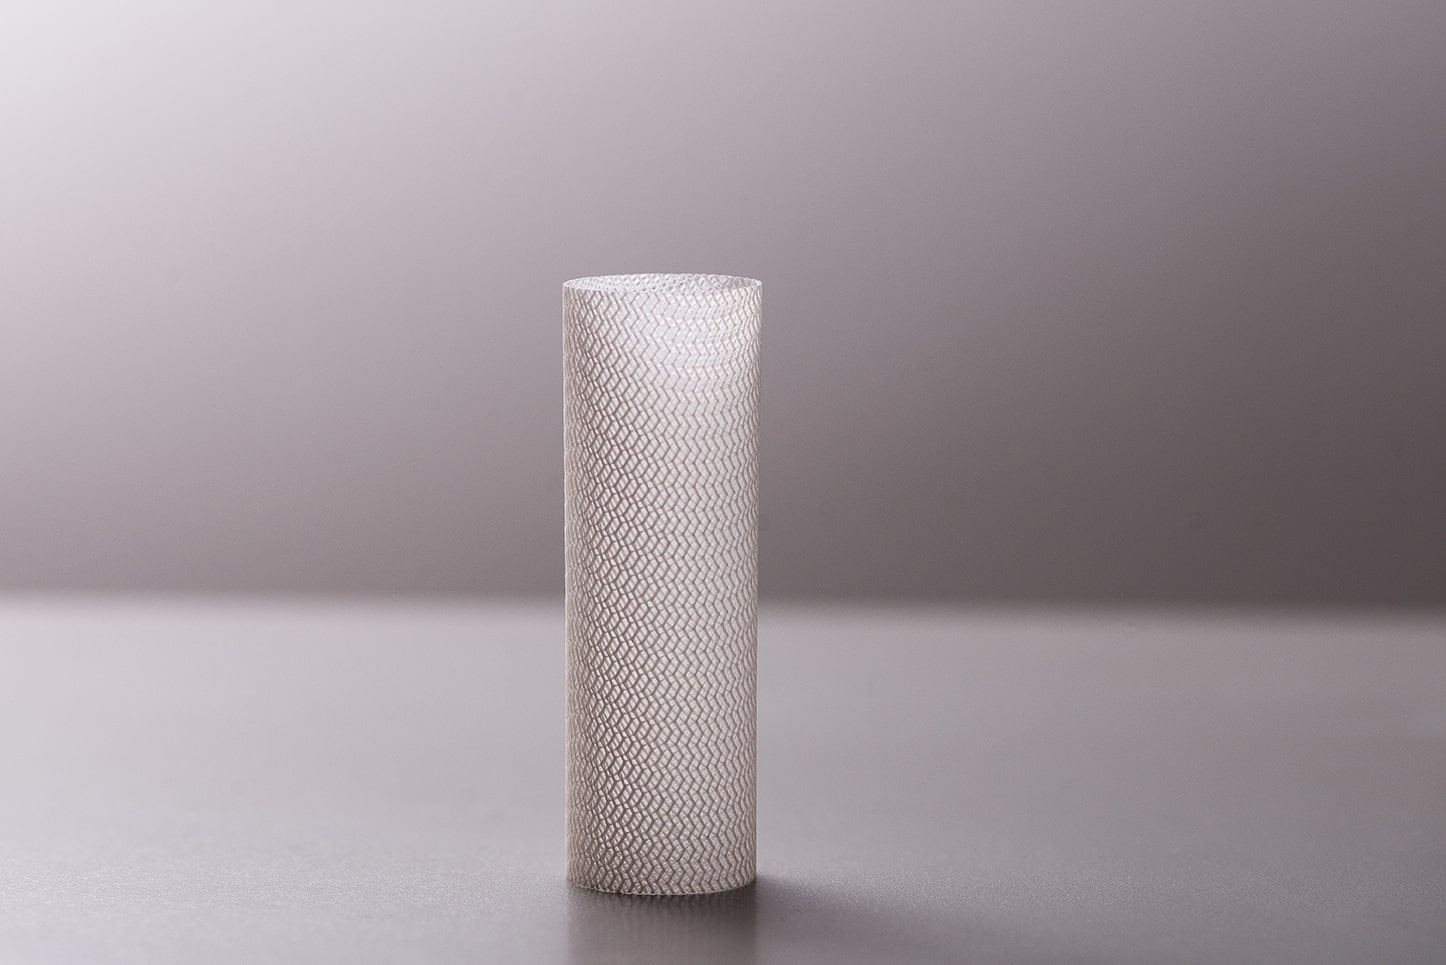 Knitted Stent Graft Fabric